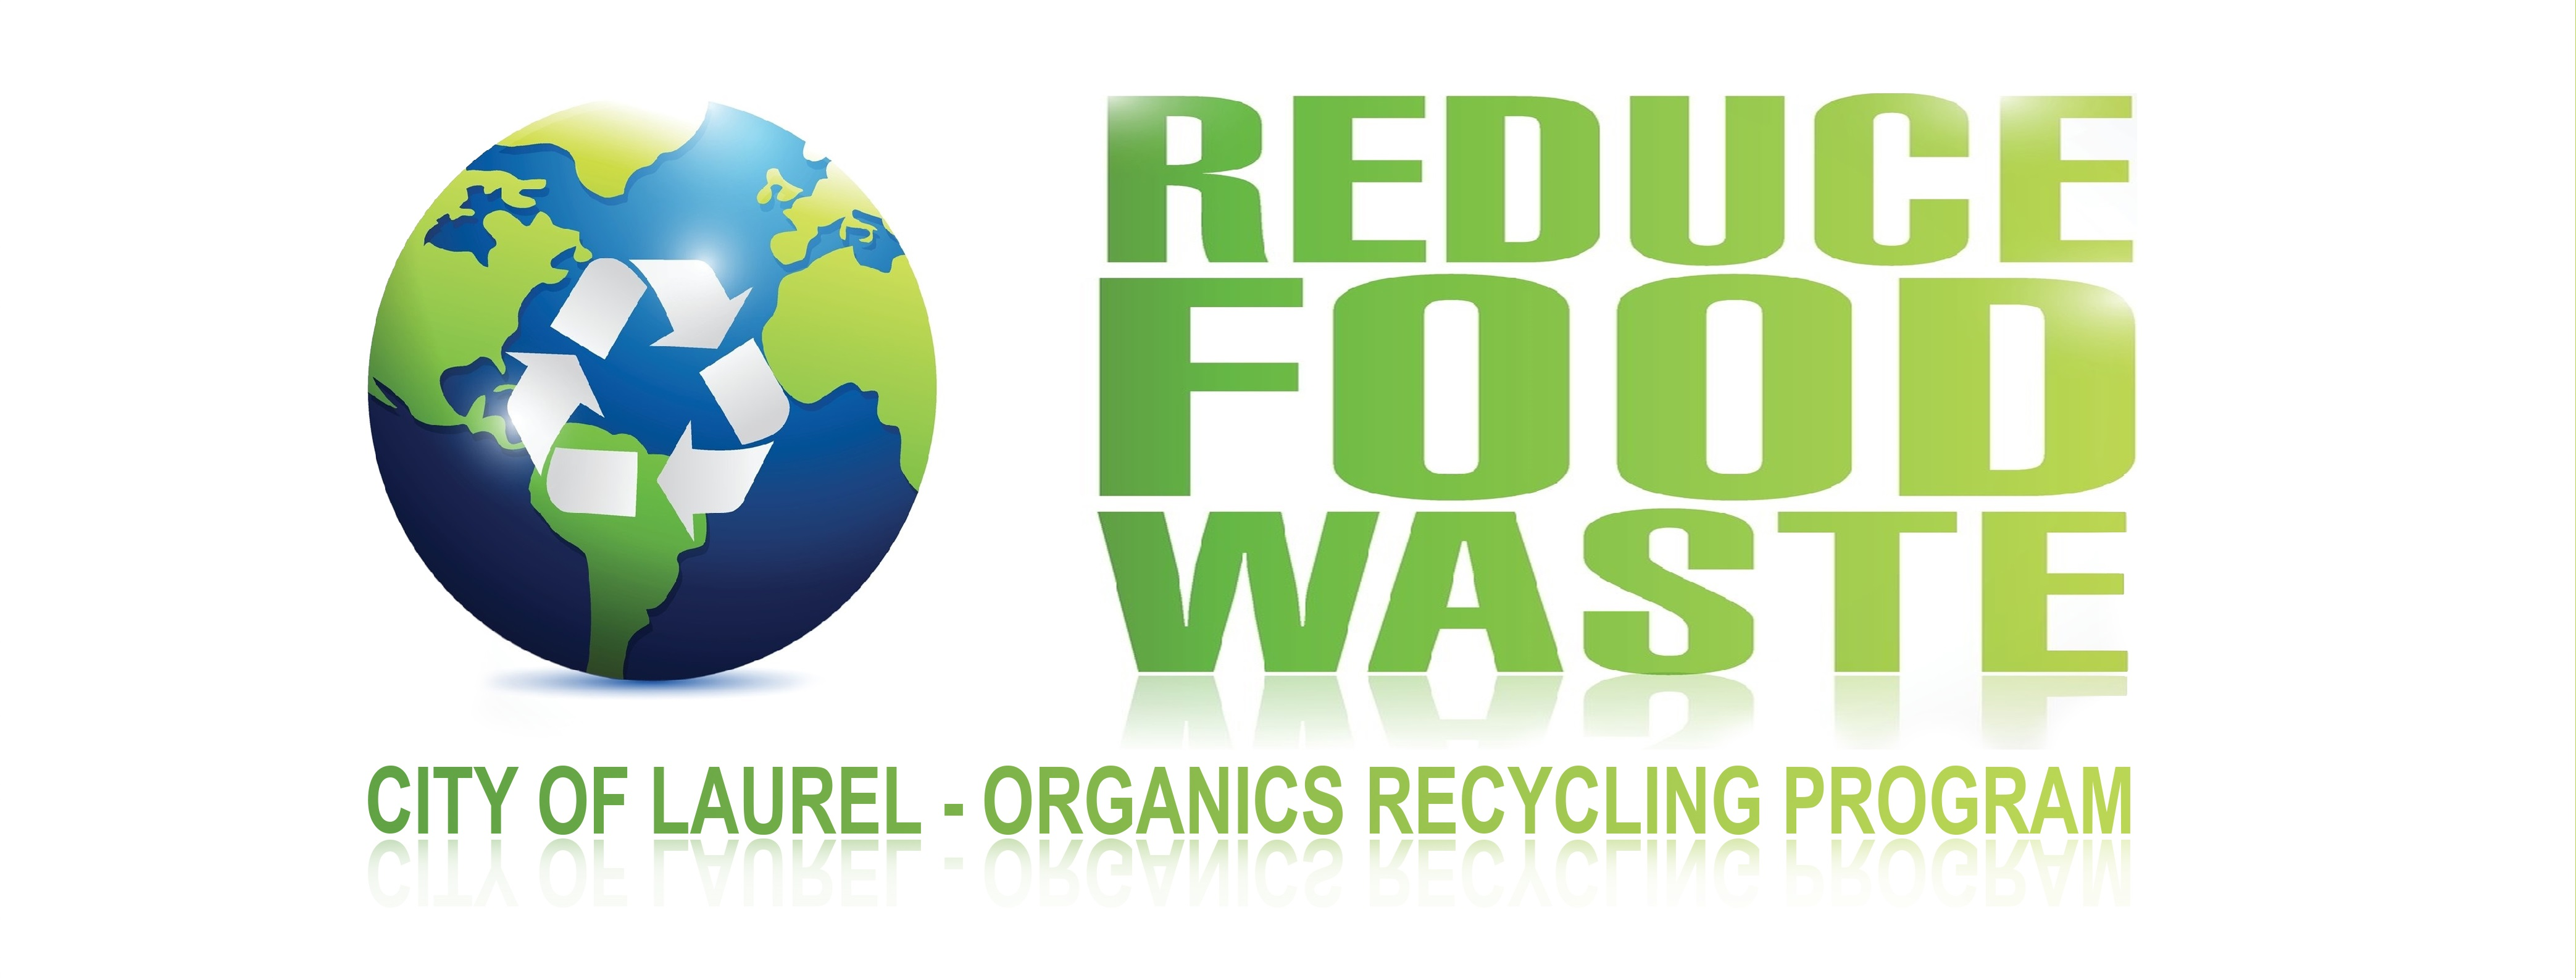 organics_recycling_program_wide_logo_no_border.jpg